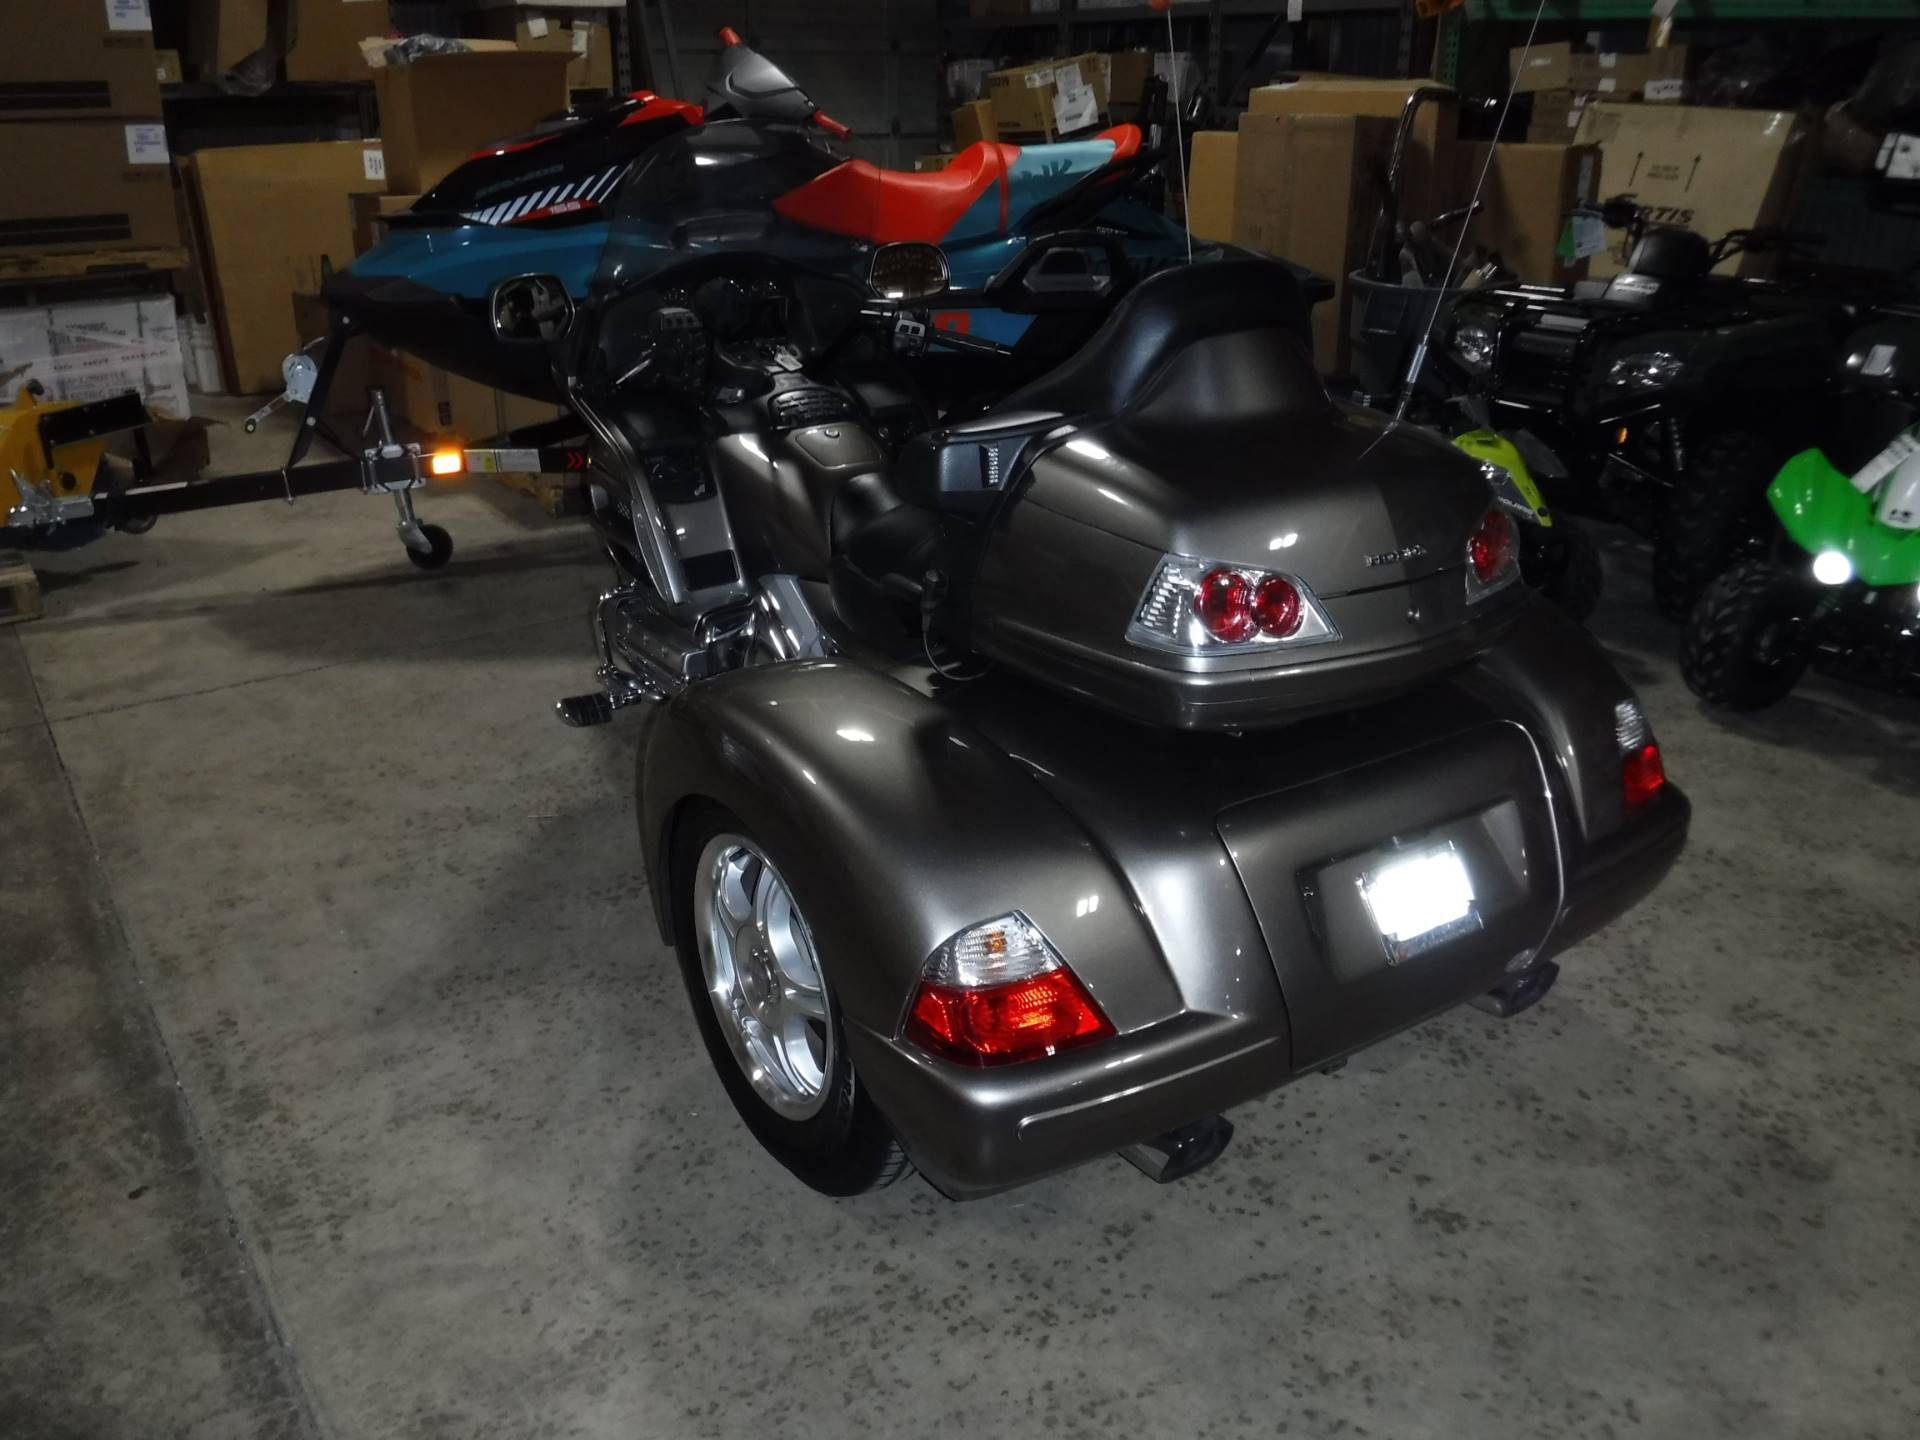 2008 Champion Trikes Honda GL 1800 in Port Angeles, Washington - Photo 3